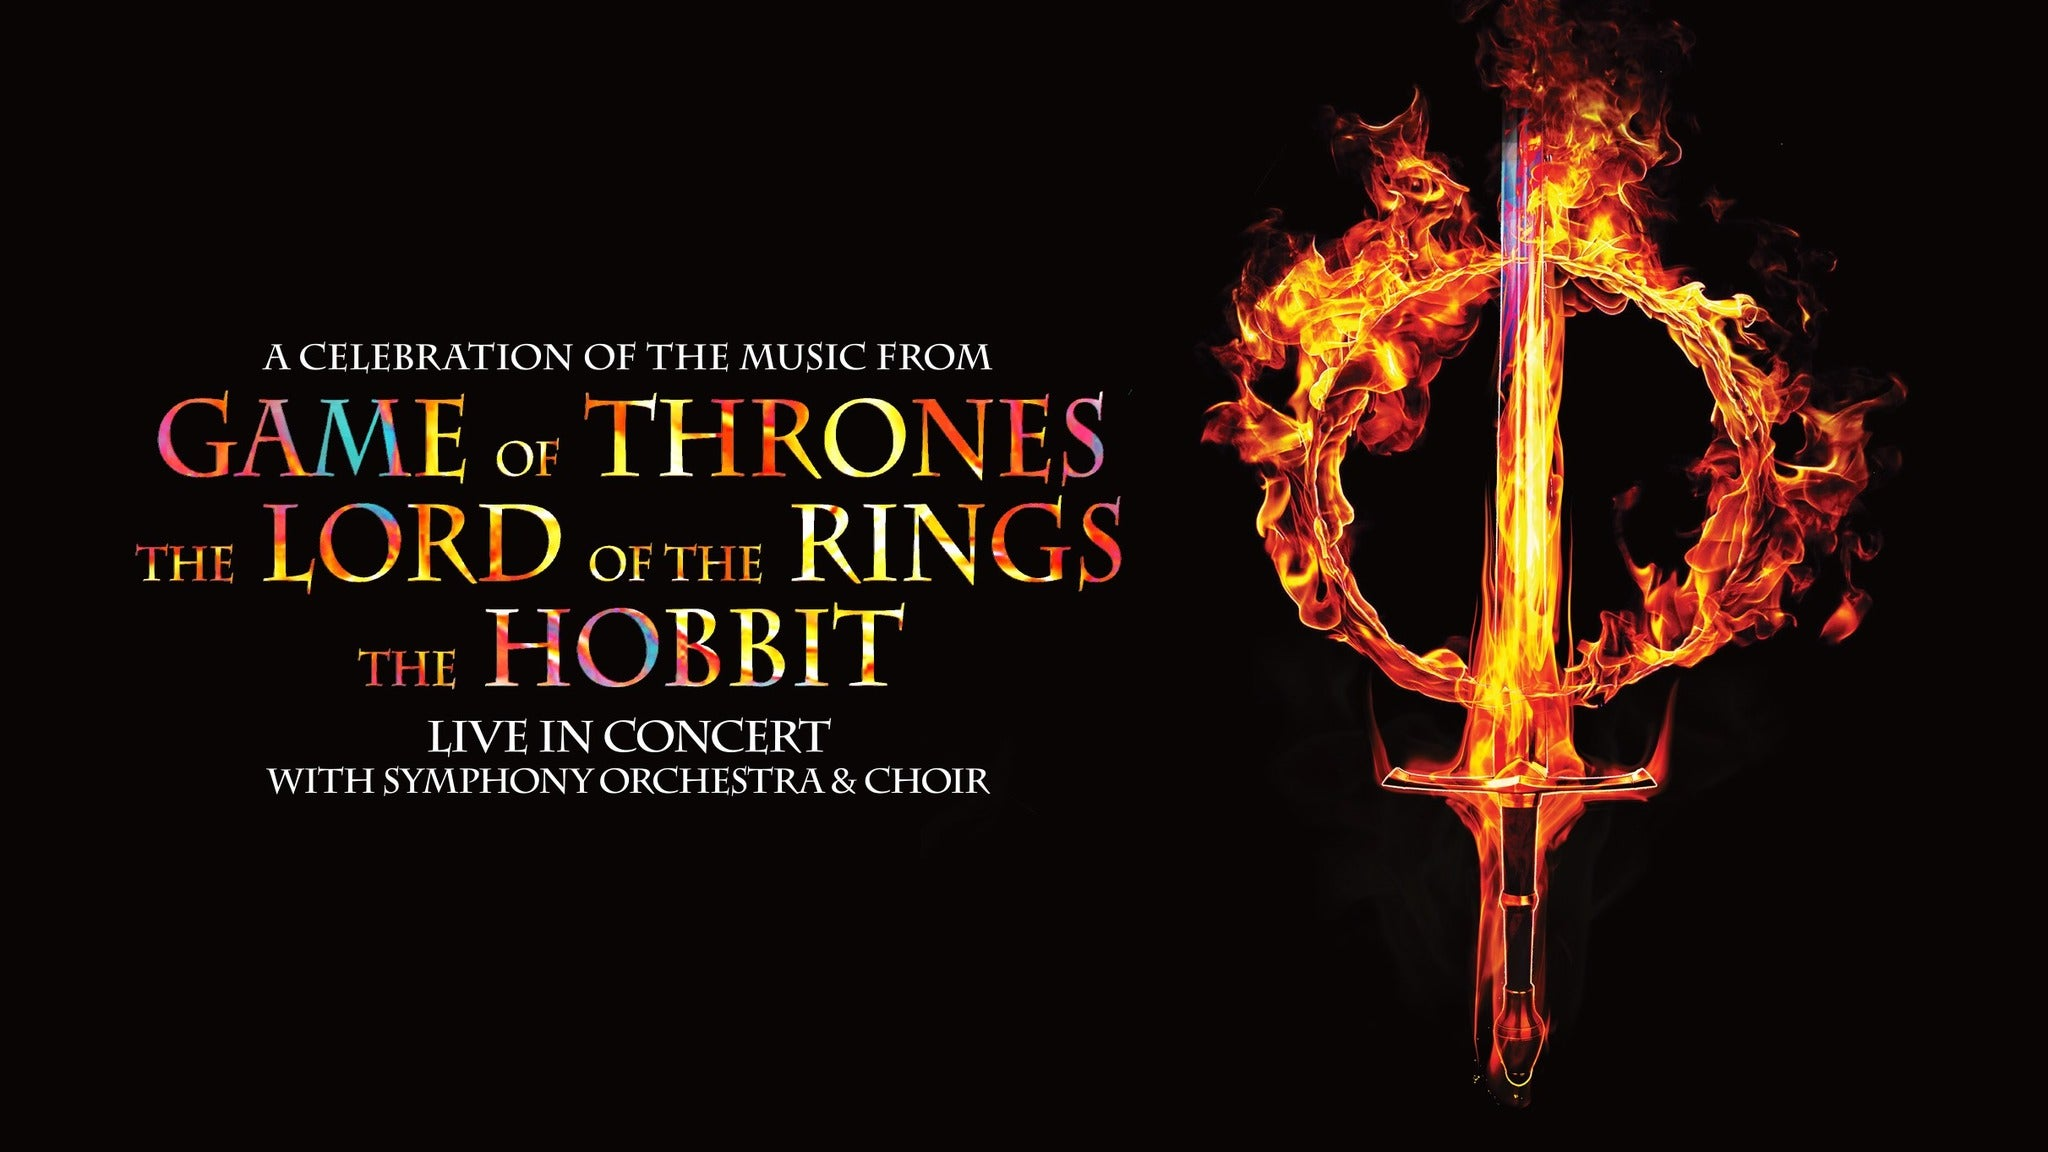 Music From Game of Thrones, Lord of the Rings and the Hobbit Event Title Pic